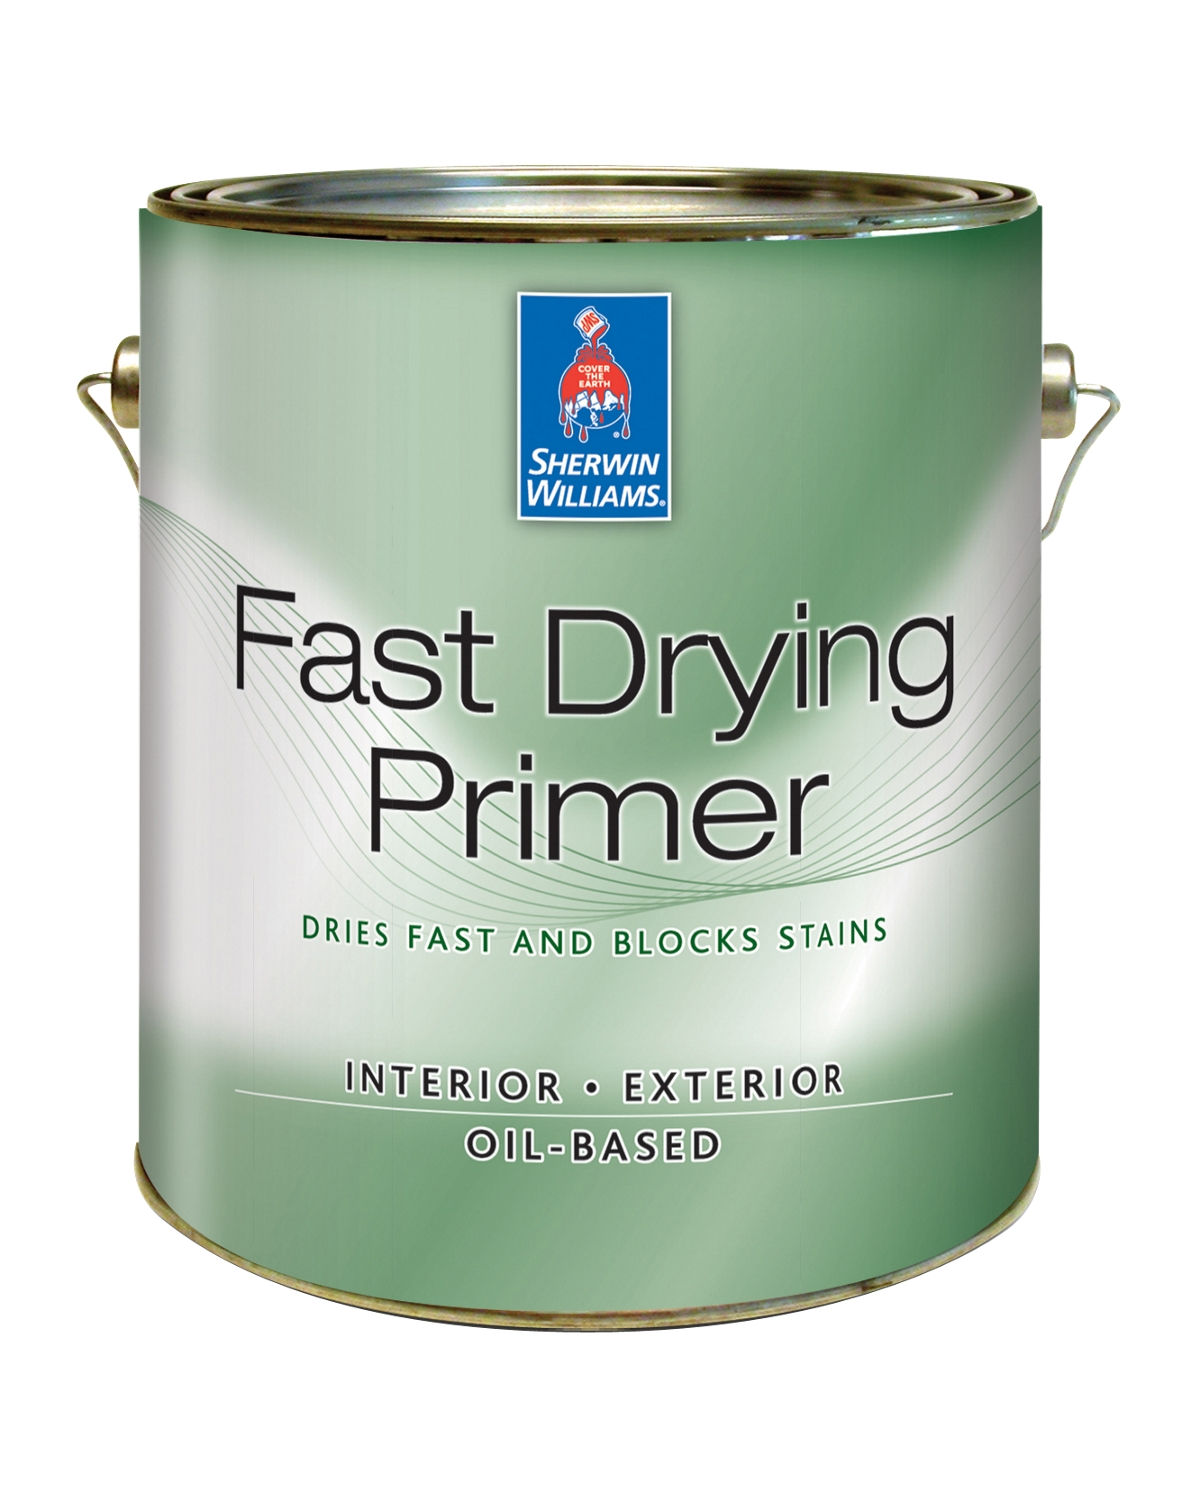 Fast Drying Primer